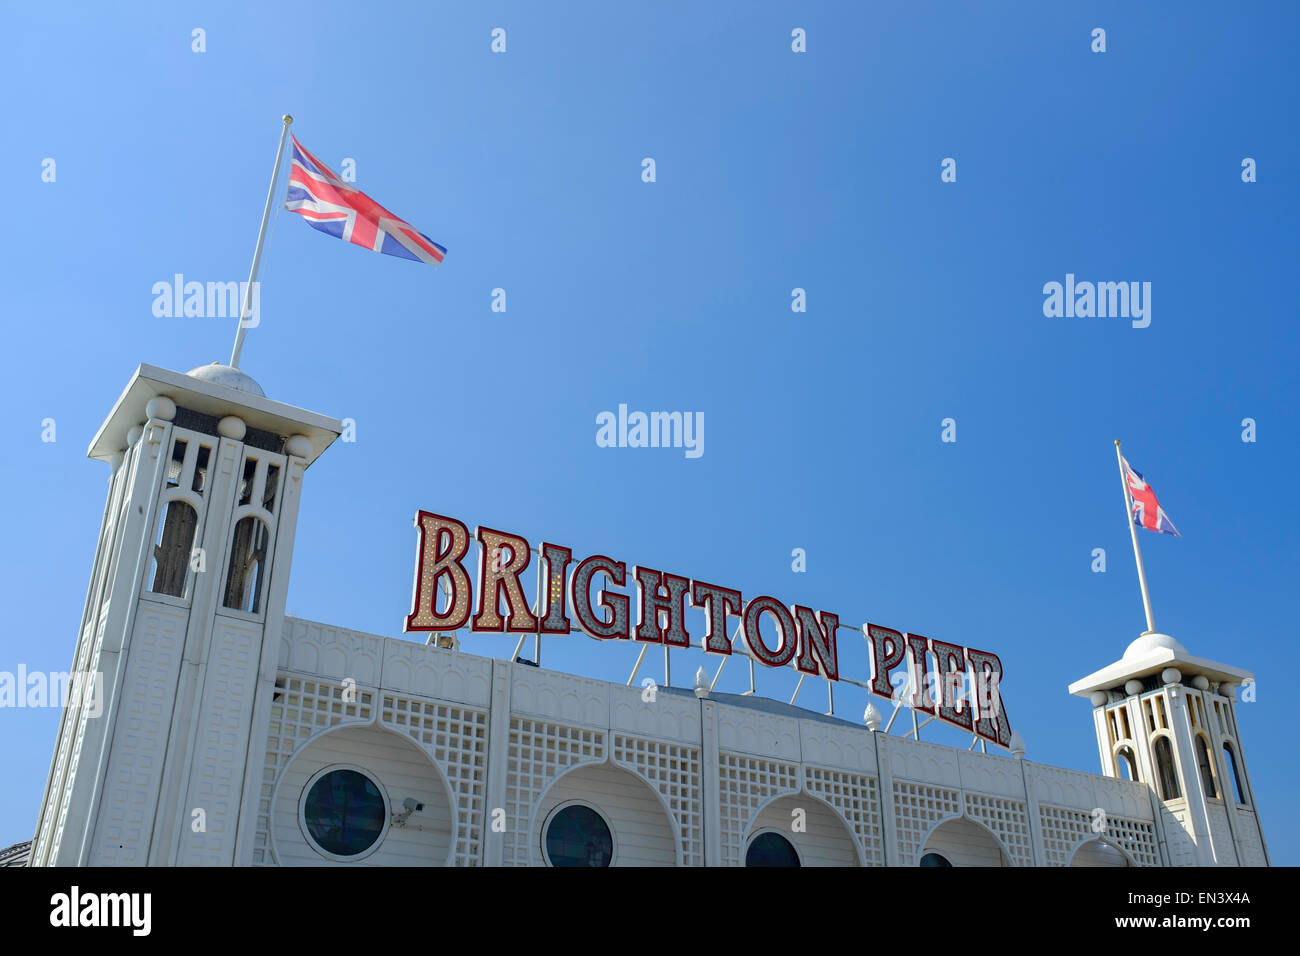 Brighton Pier. Brighton, East Sussex, England, UK - Stock Image